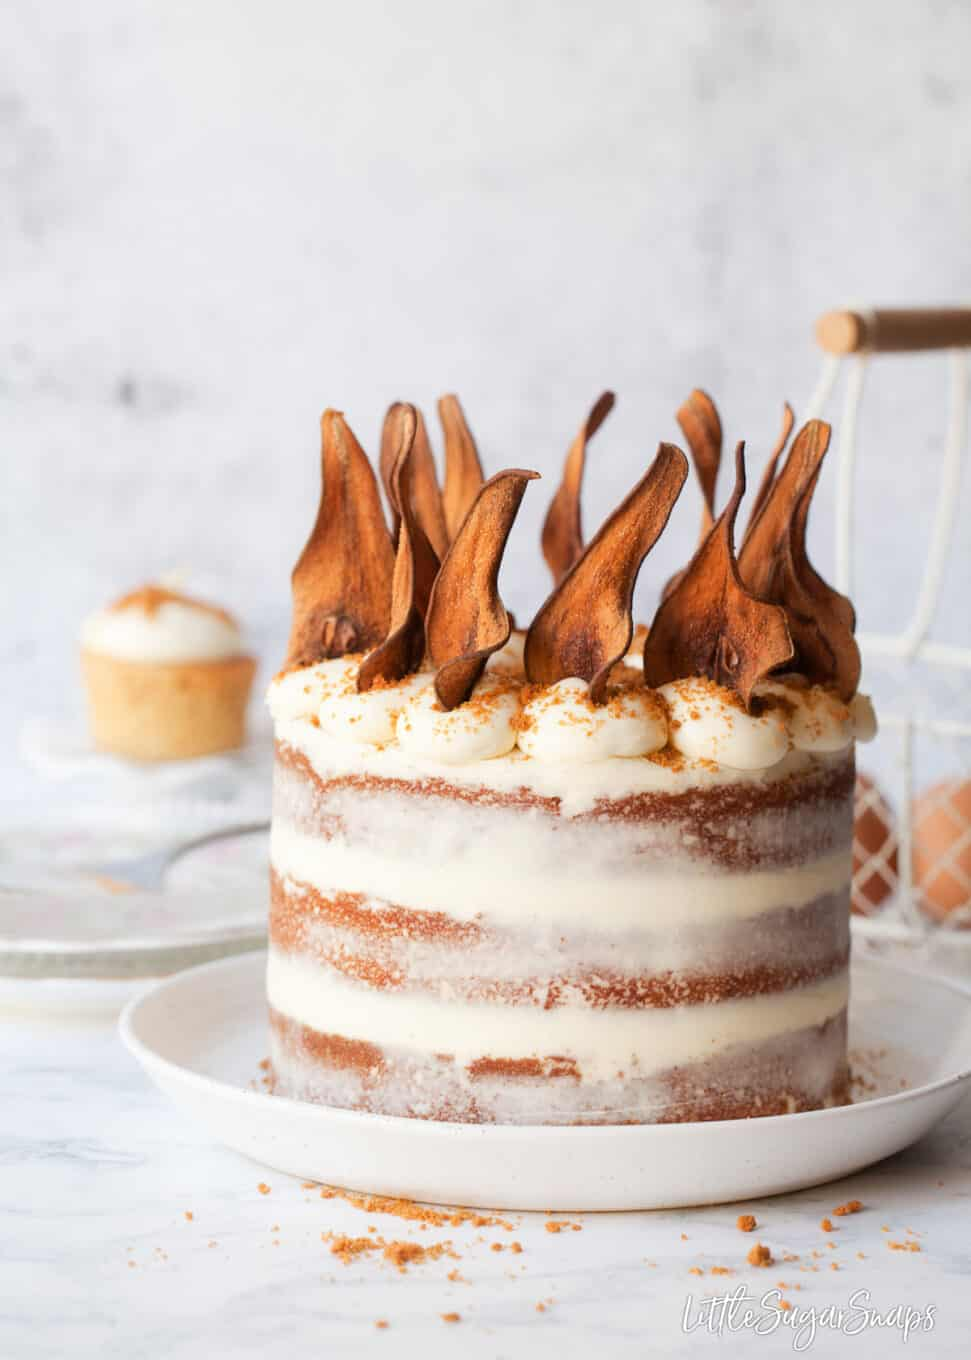 Pear wafers topping a Biscoff cake with white chocolate mascarpone frosting.